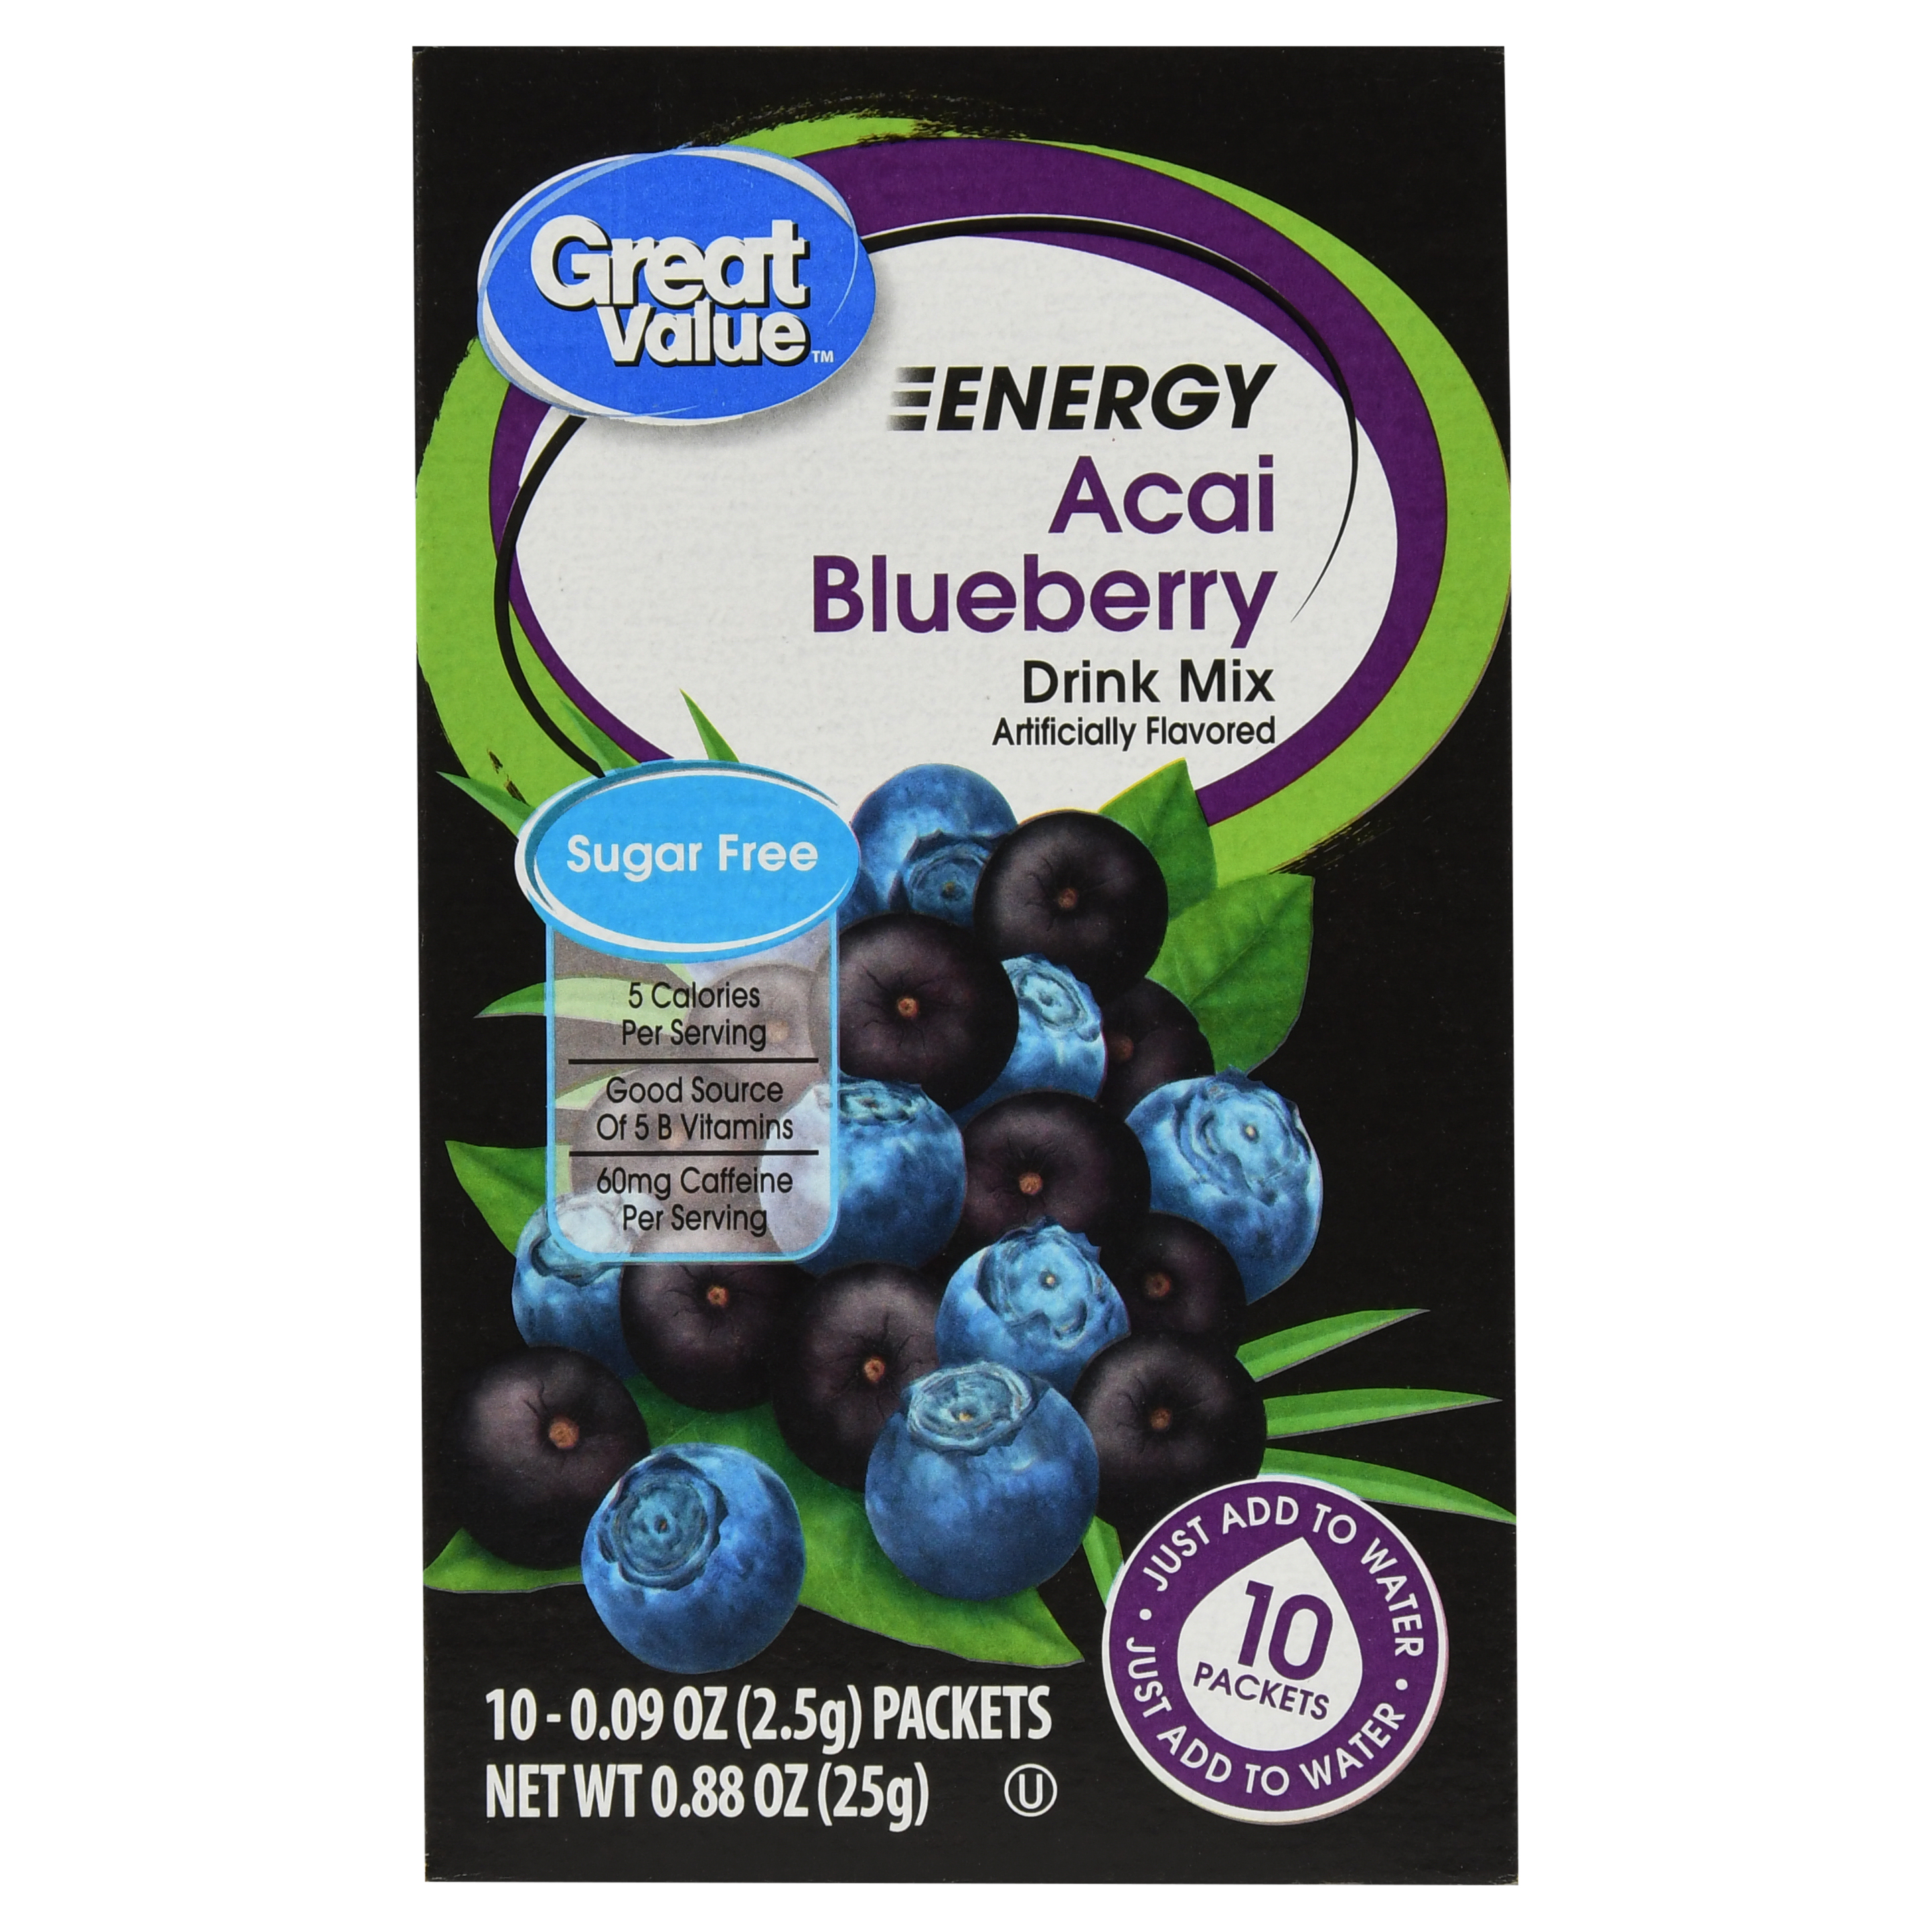 Great Value Energy Drink Mix, Acai Blueberry, Sugar-Free, 0.88 oz, 10 Count